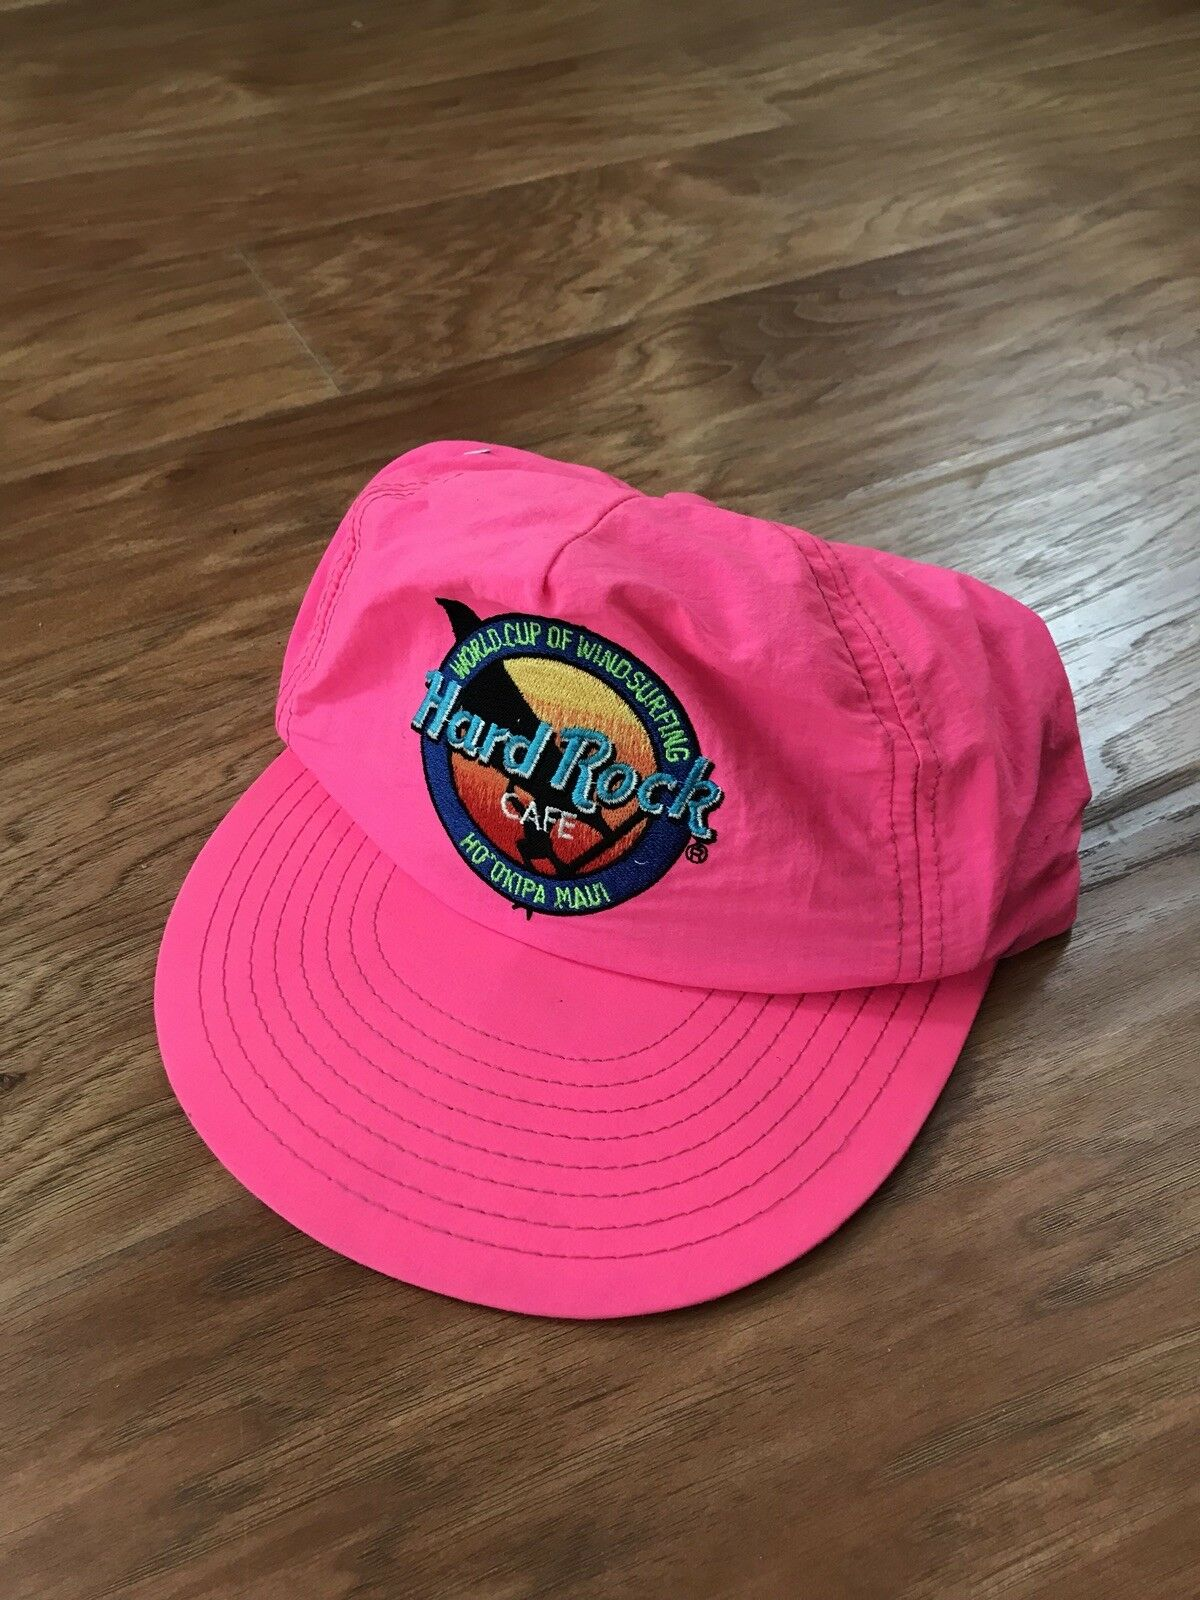 Vintage 90 s Hard Rock Cafe Maui Hat In Cap Trucker Made In Hat USA  Adjustable 5a34f0 7f739c8e3978